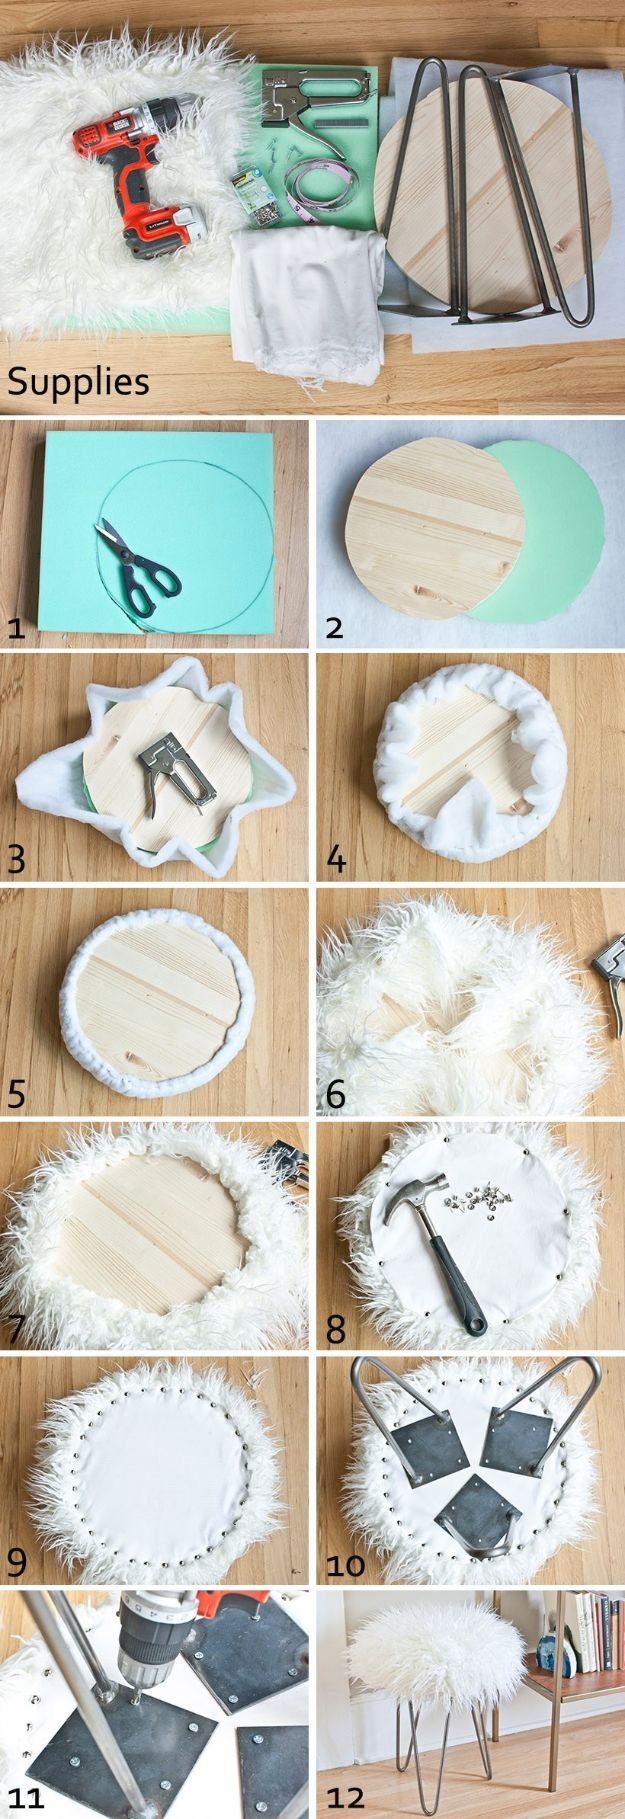 1806 best DIY + Crafts images on Pinterest | Creative ideas, Good ...